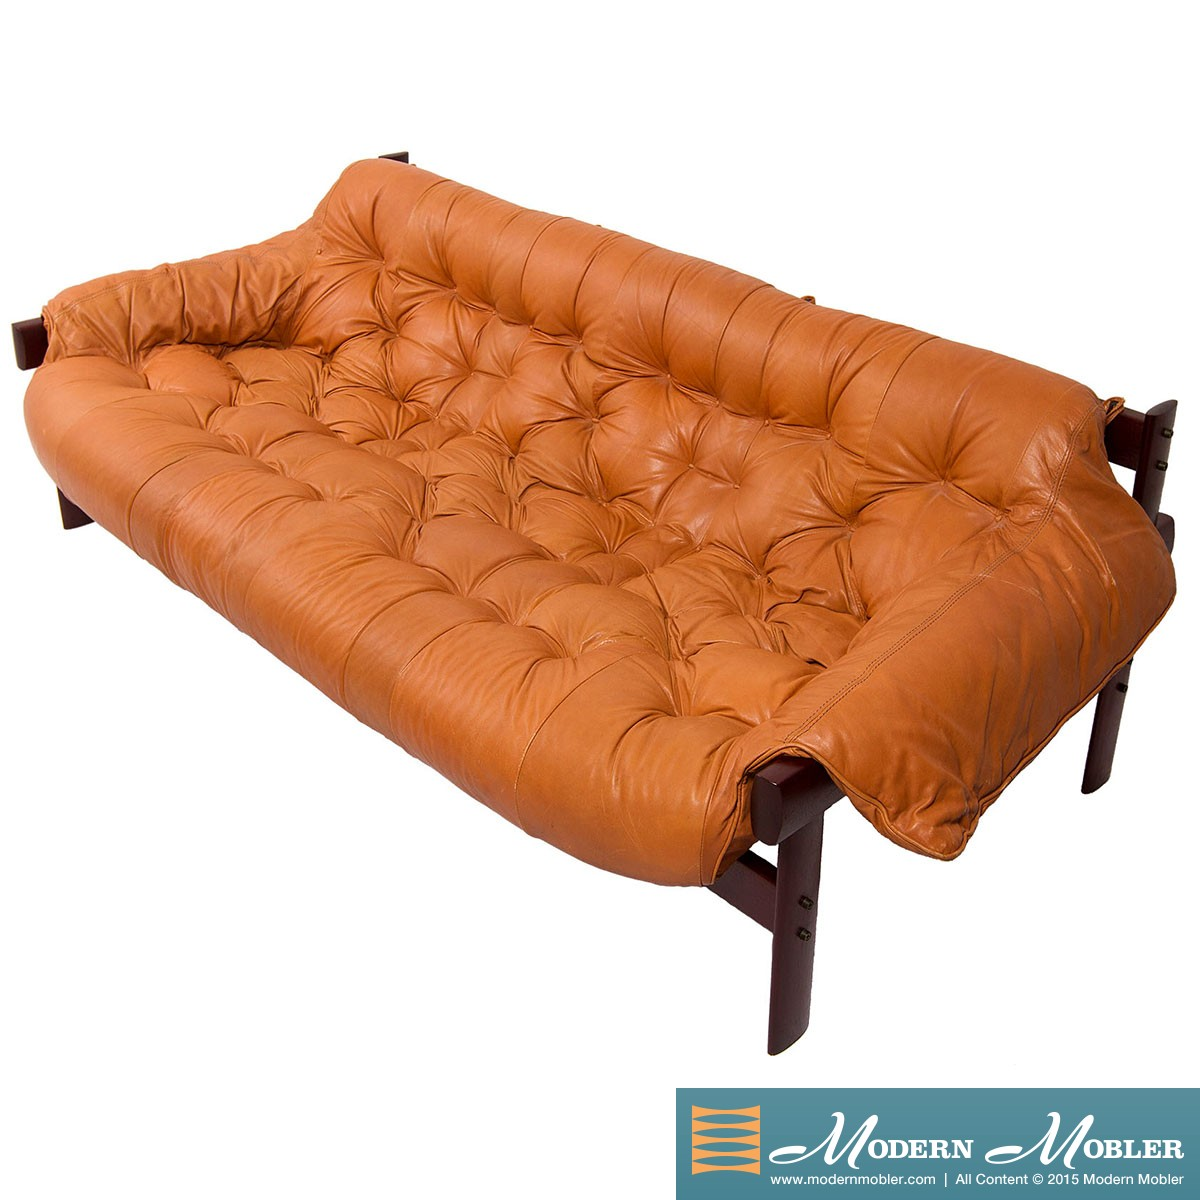 Percival Lafer Rosewood And Distressed Tufted Yellow: Percival Lafer Sofa Leather And Rosewood Percival Lafer